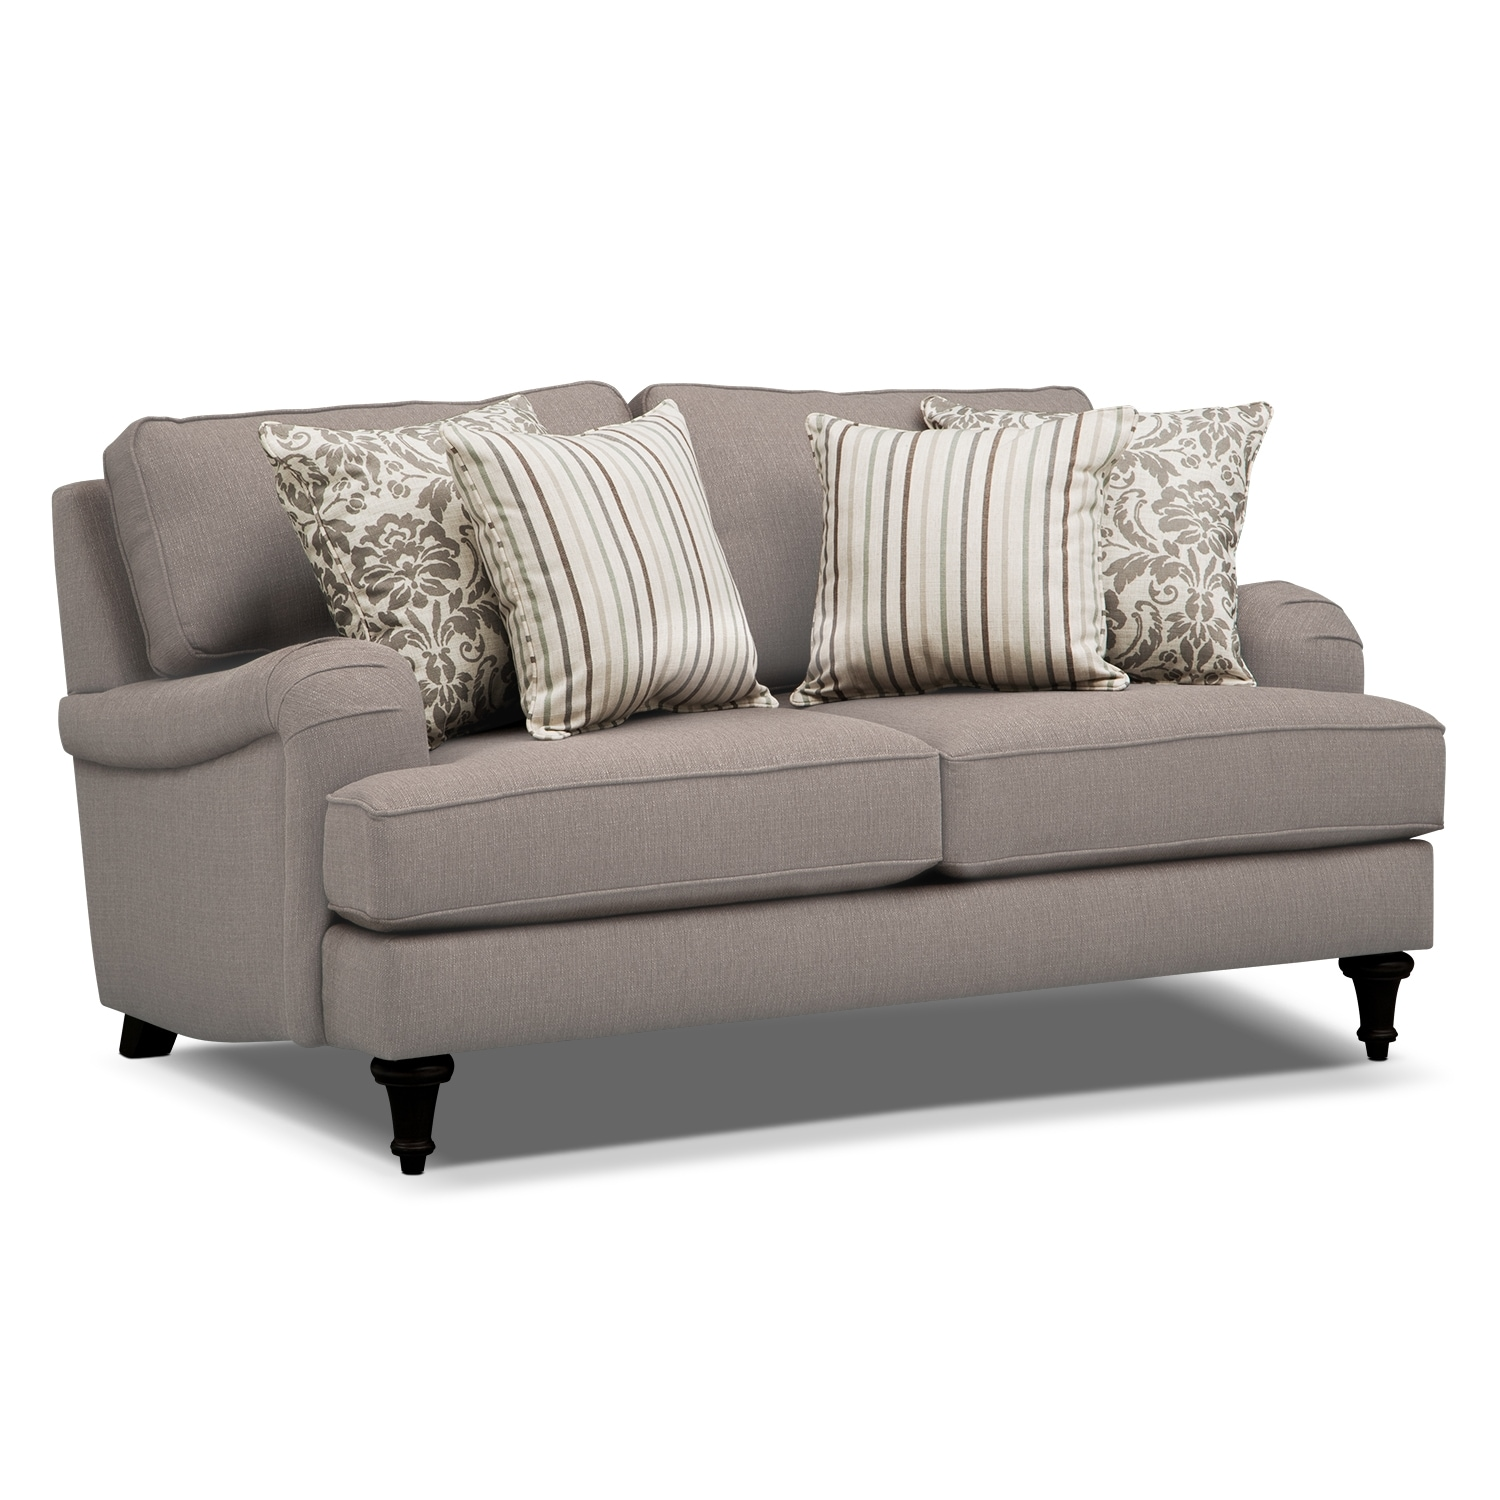 Candice Loveseat Gray Value City Furniture And Mattresses